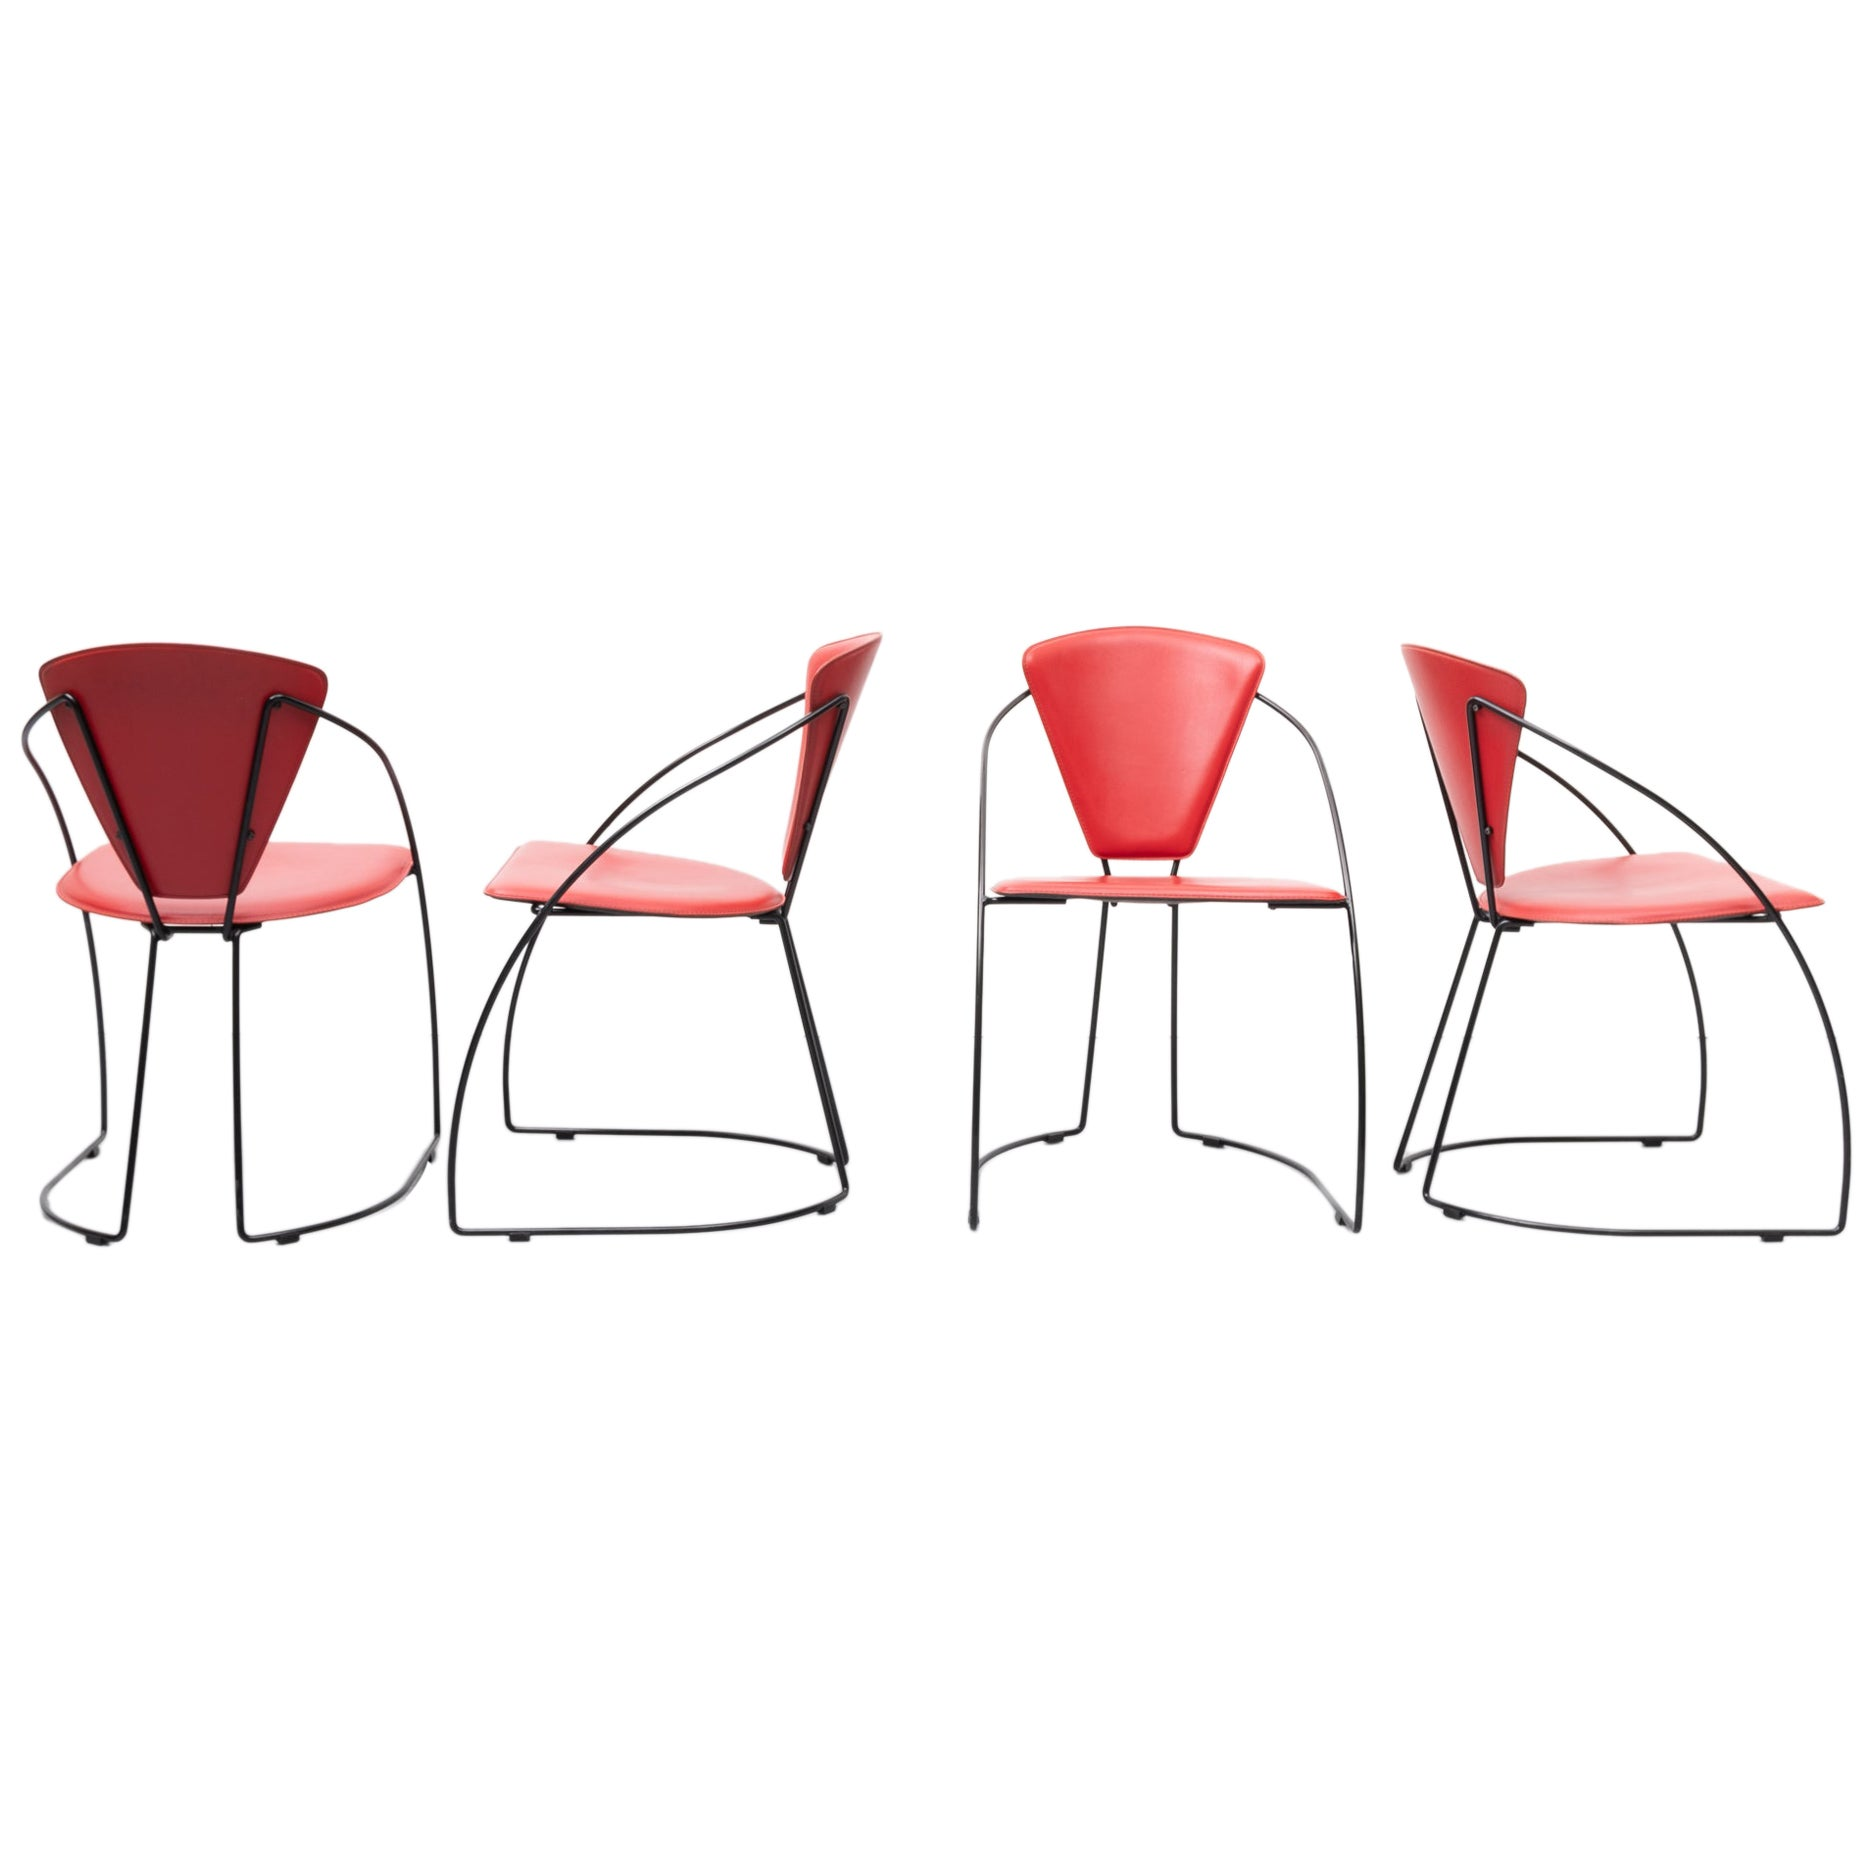 Italian Stich Leather Dining Chairs, 1980s